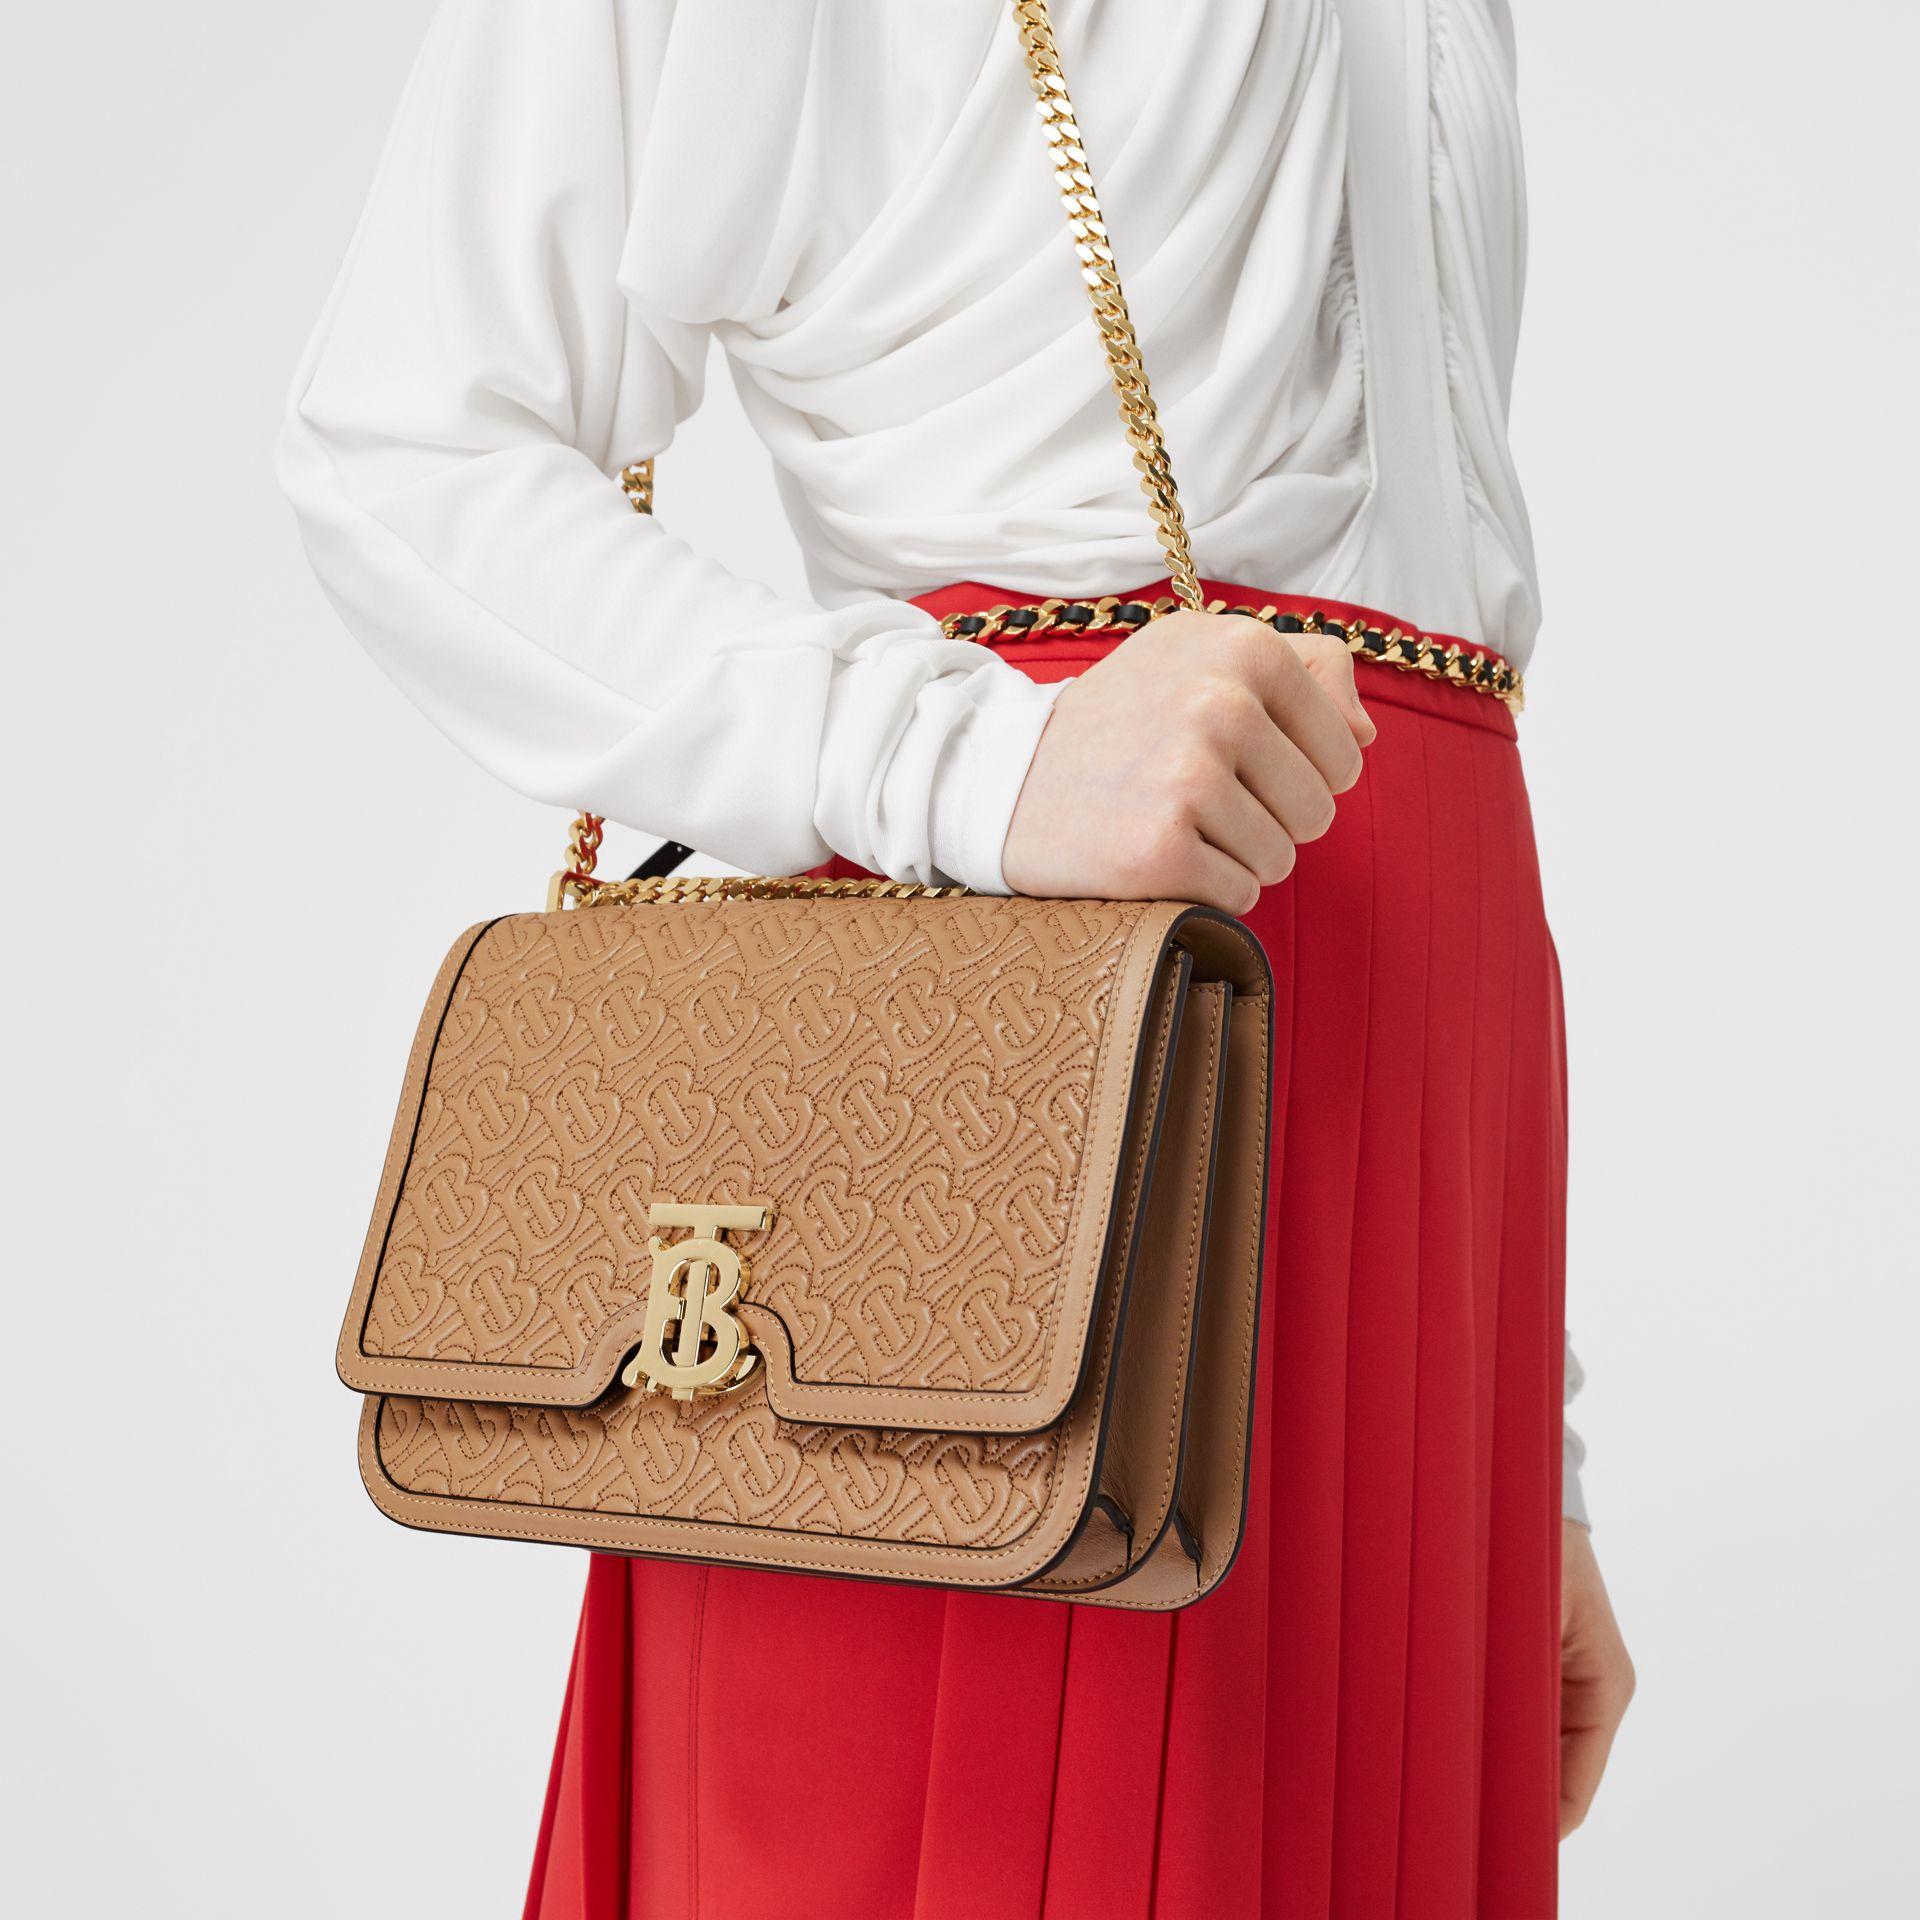 Medium Quilted Monogram Lambskin TB Bag in Honey - Women | Burberry Singapore - gallery image 2